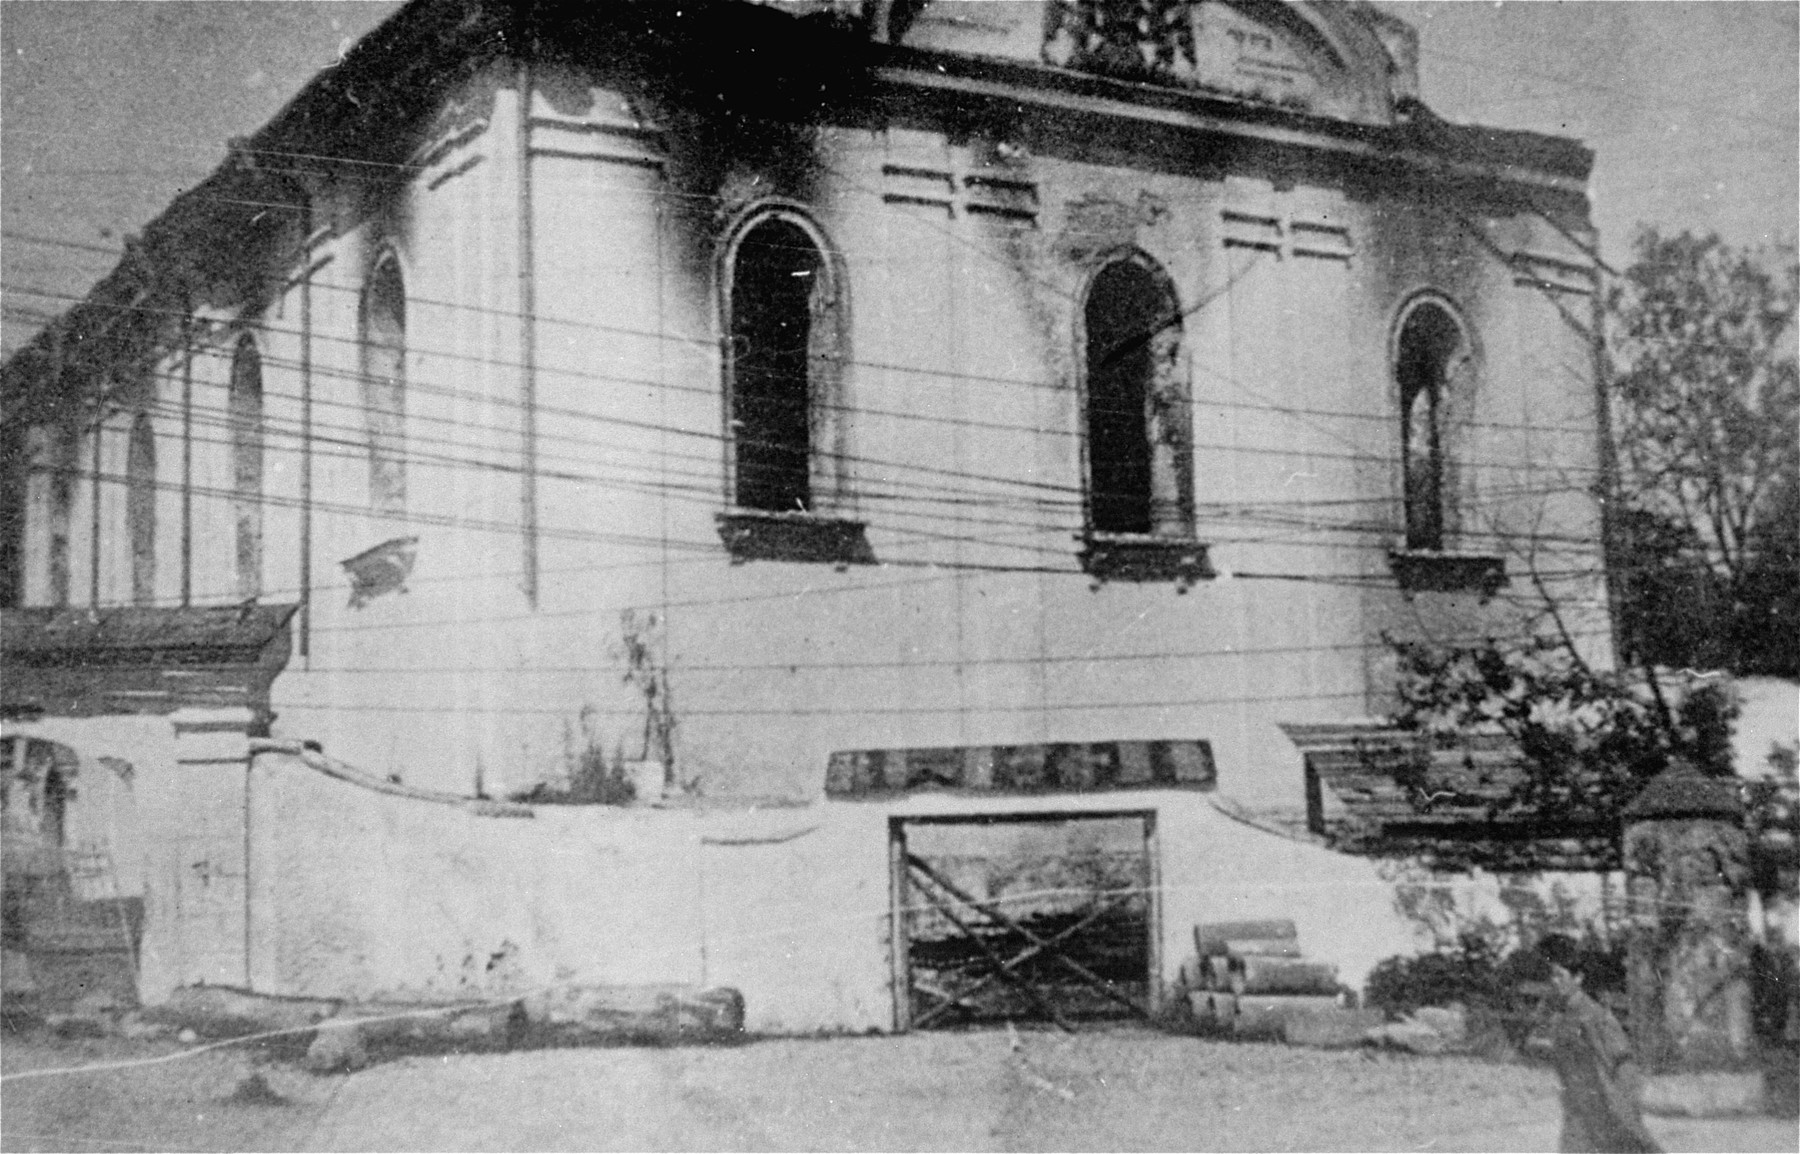 View of a destroyed synagogue in Krzemieniec.